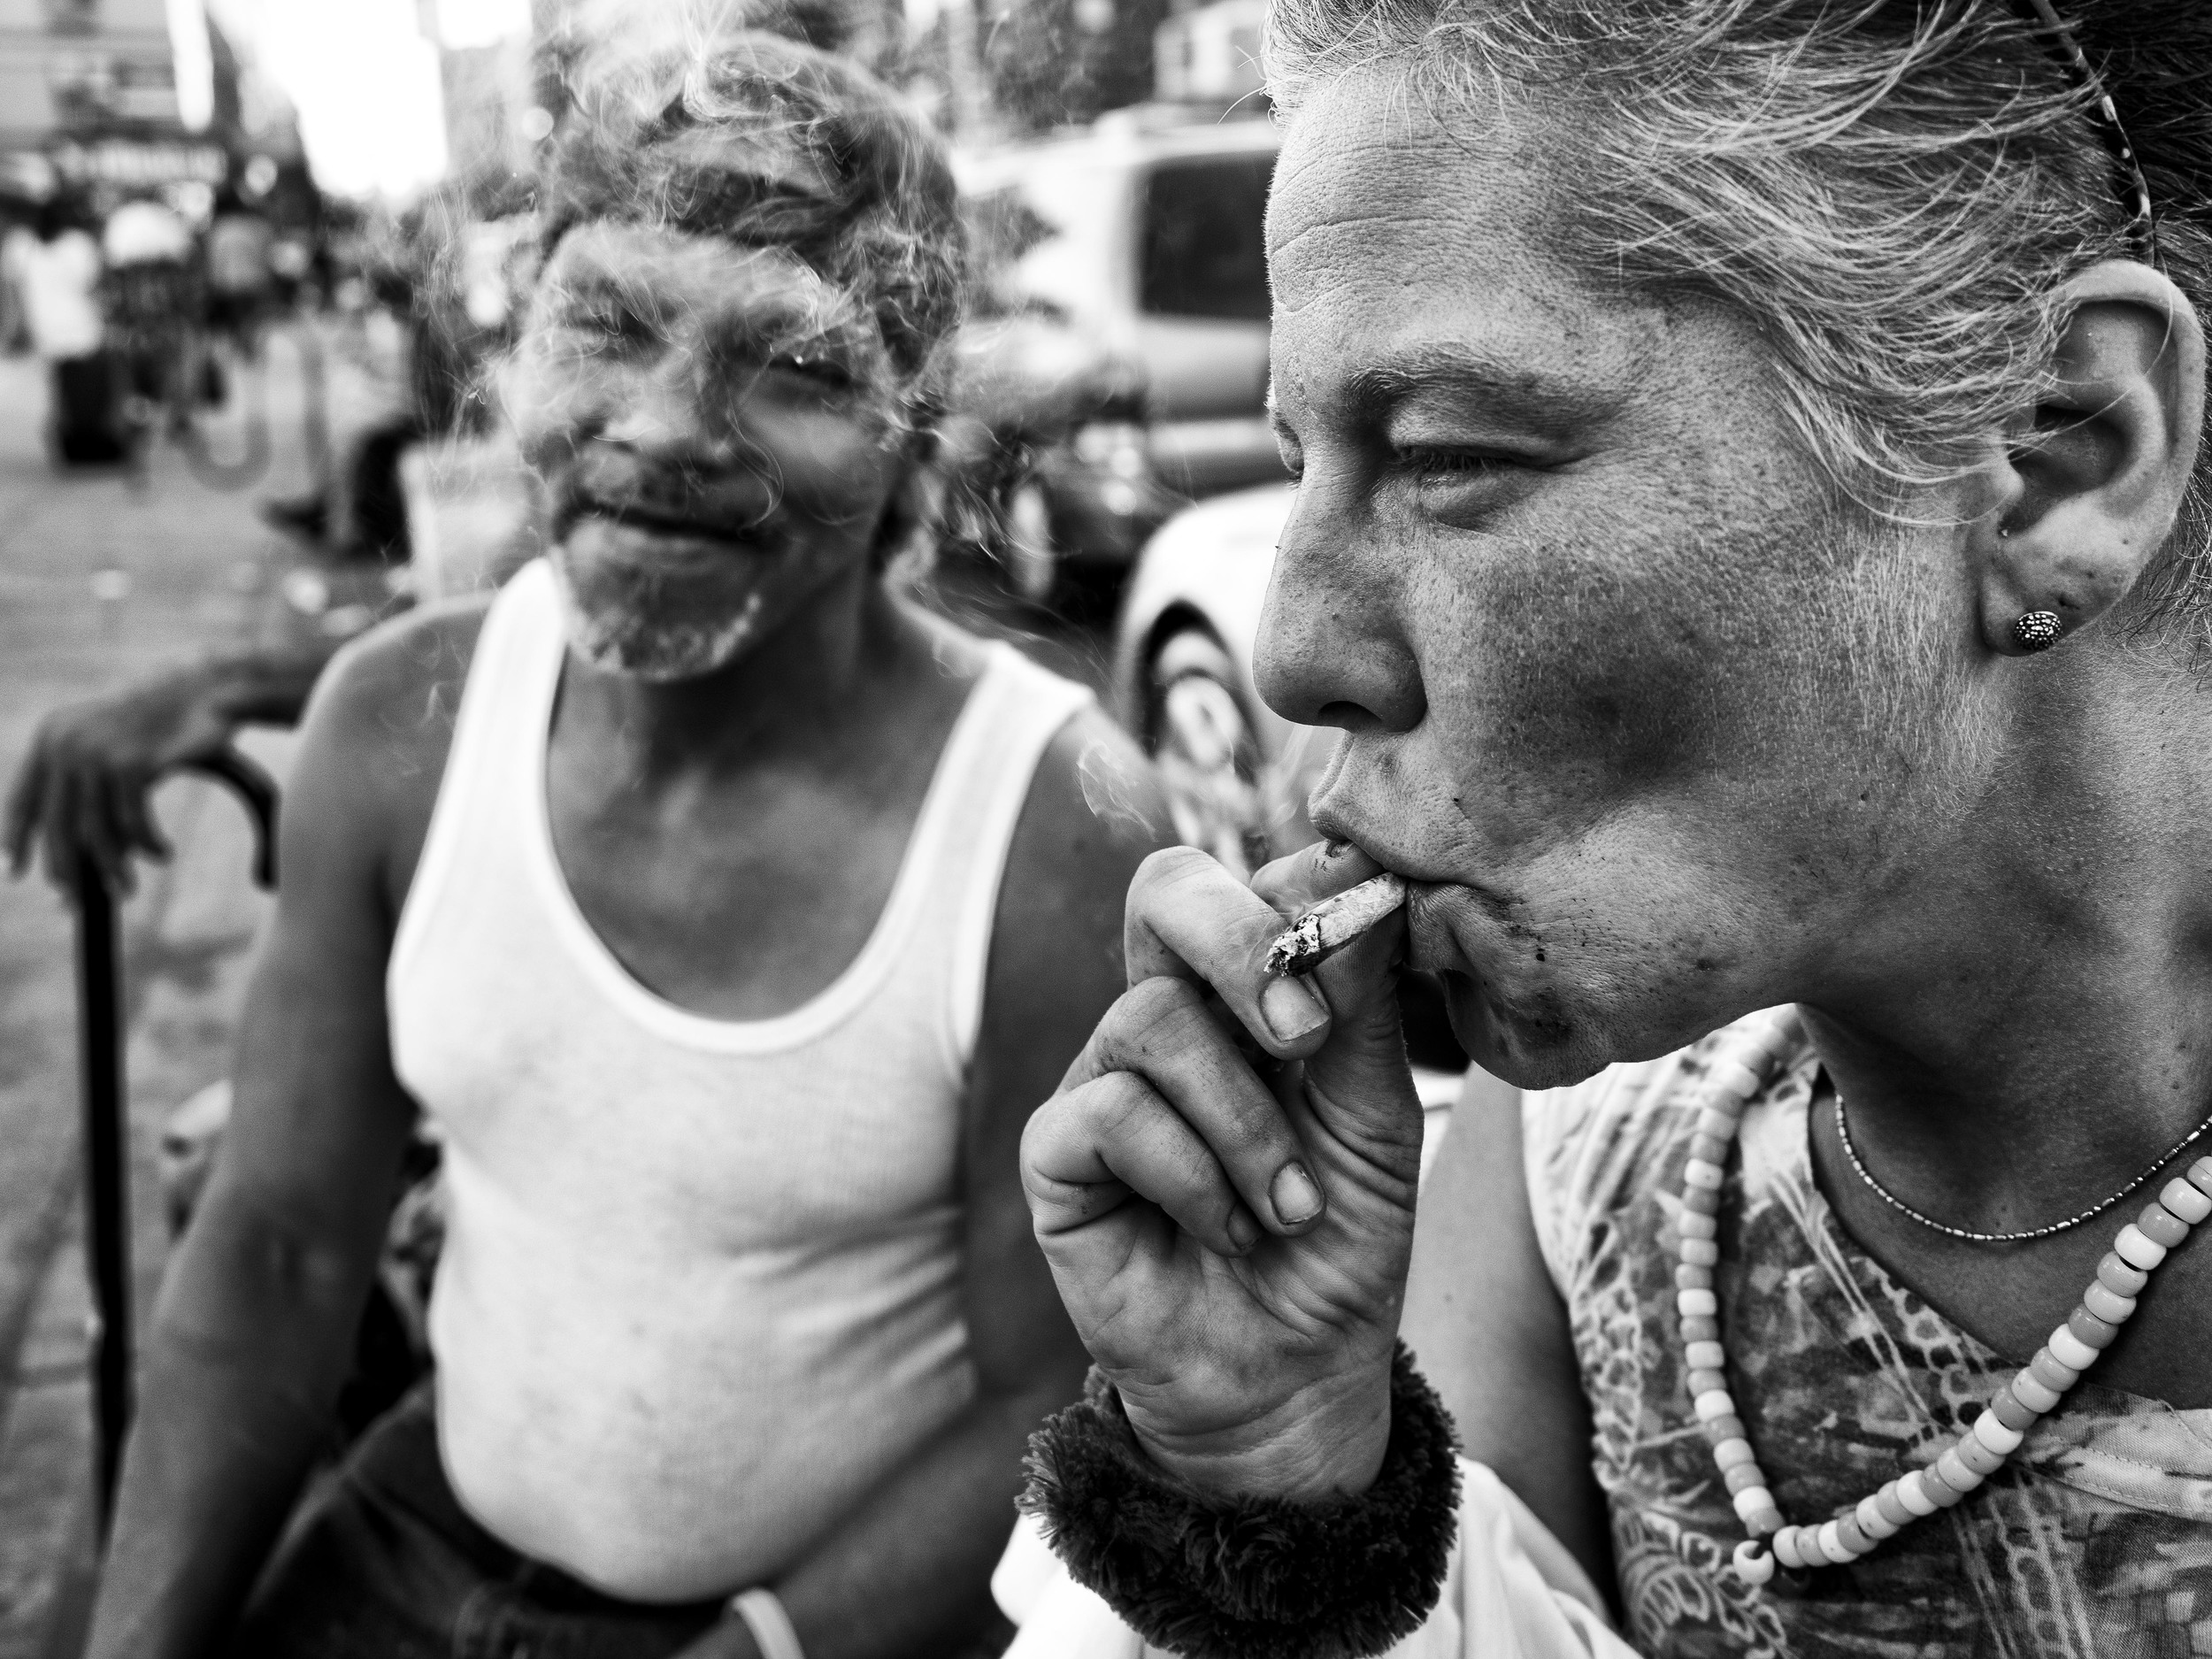 A woman smokes synthetic marijuana -- also know as K2 -- near 125th and Lexington Avenue on Tuesday, September 15, 2015 in New York, N.Y.